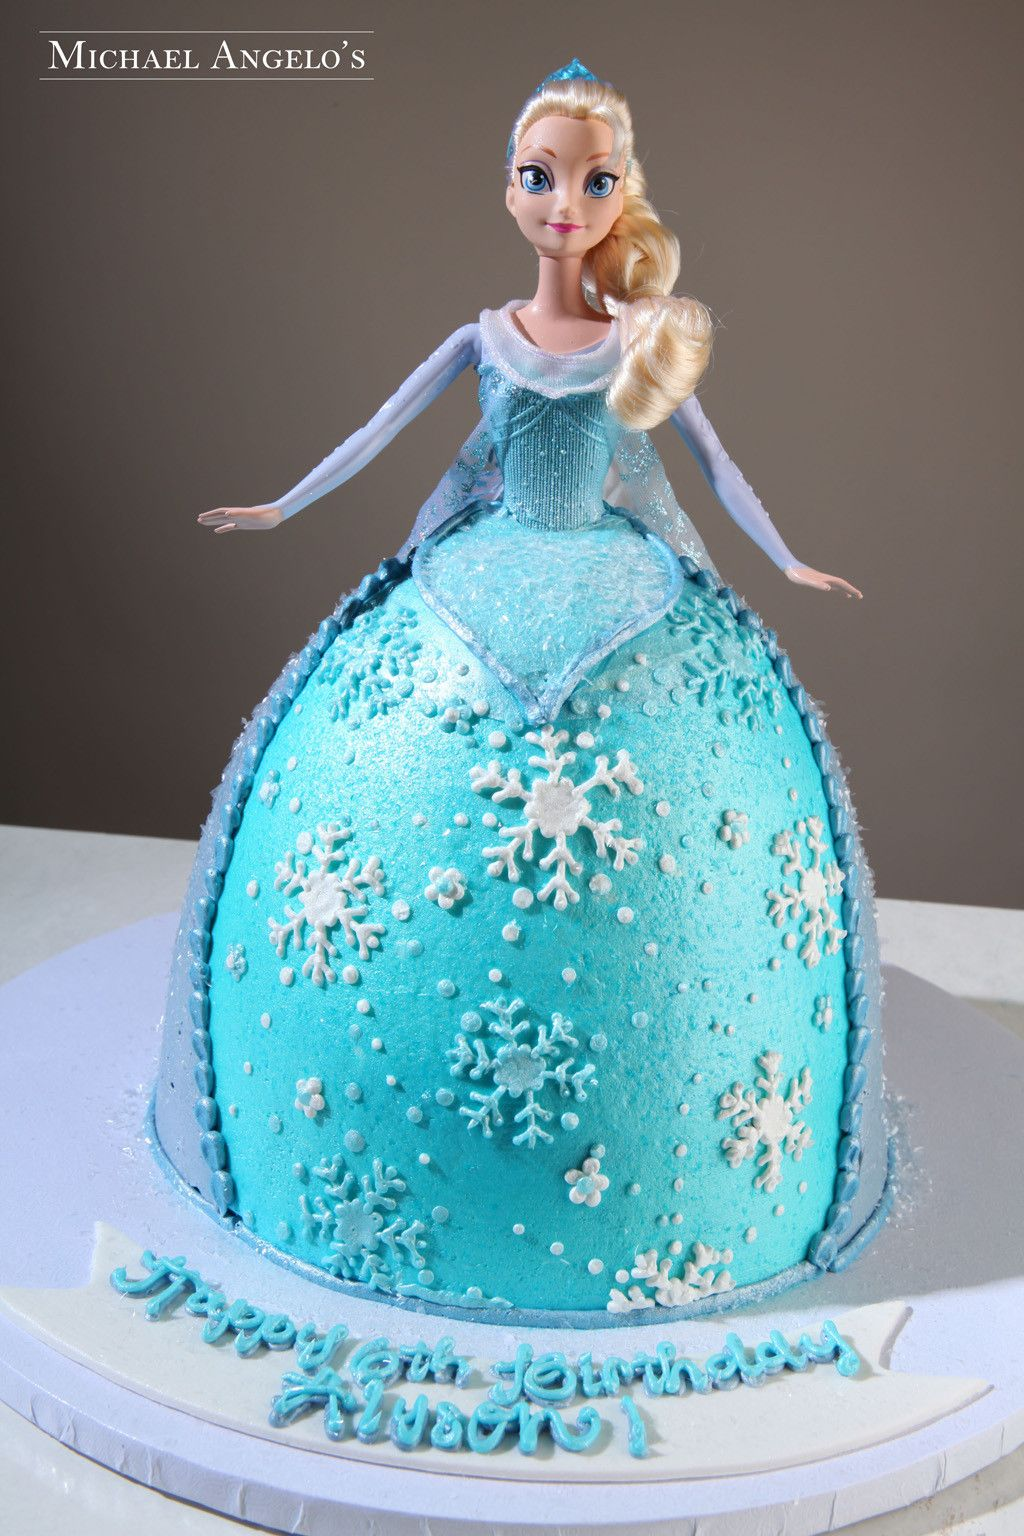 Elsa Doll Cake Decorations : Frozen Elsa Doll #105Characters by Michael Angelo s Bakery ...